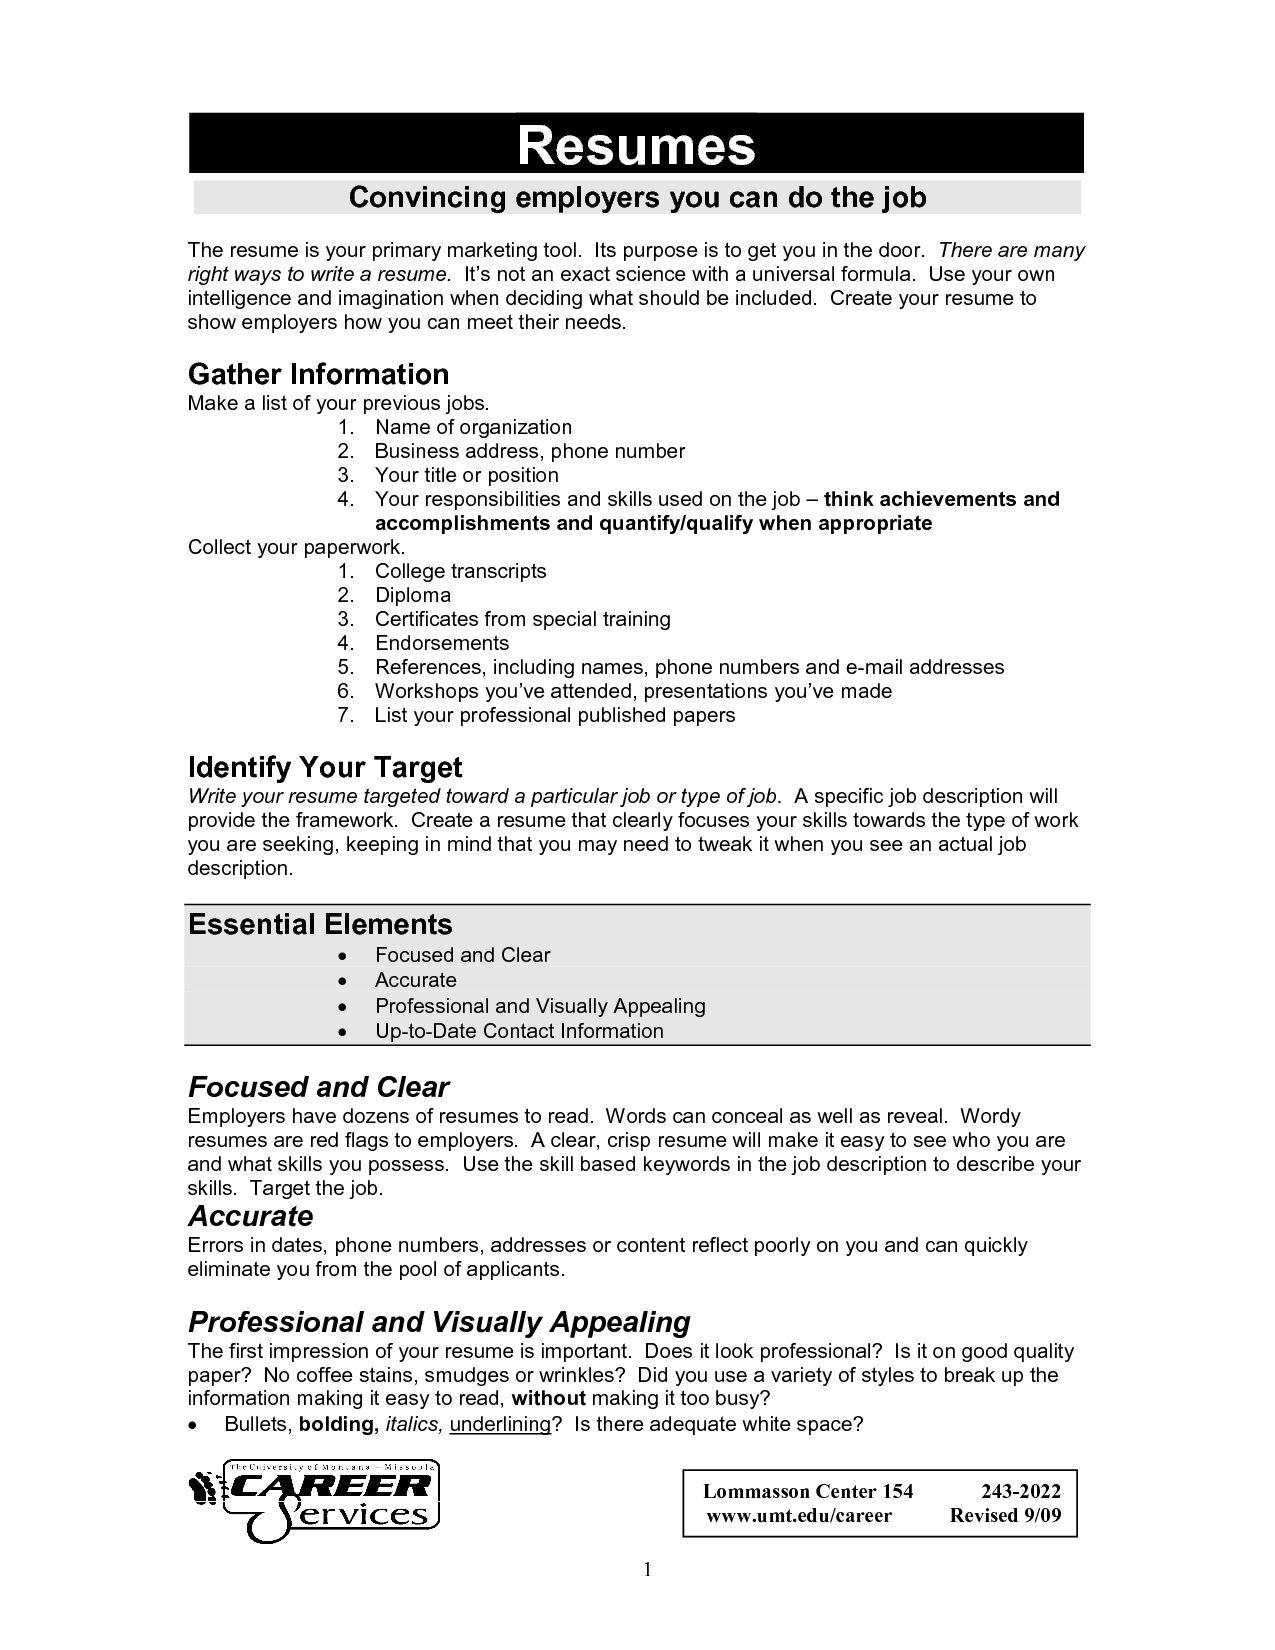 Career Builder Resume Template Career Builder Resume Serviceregularmidwesterners Resume And